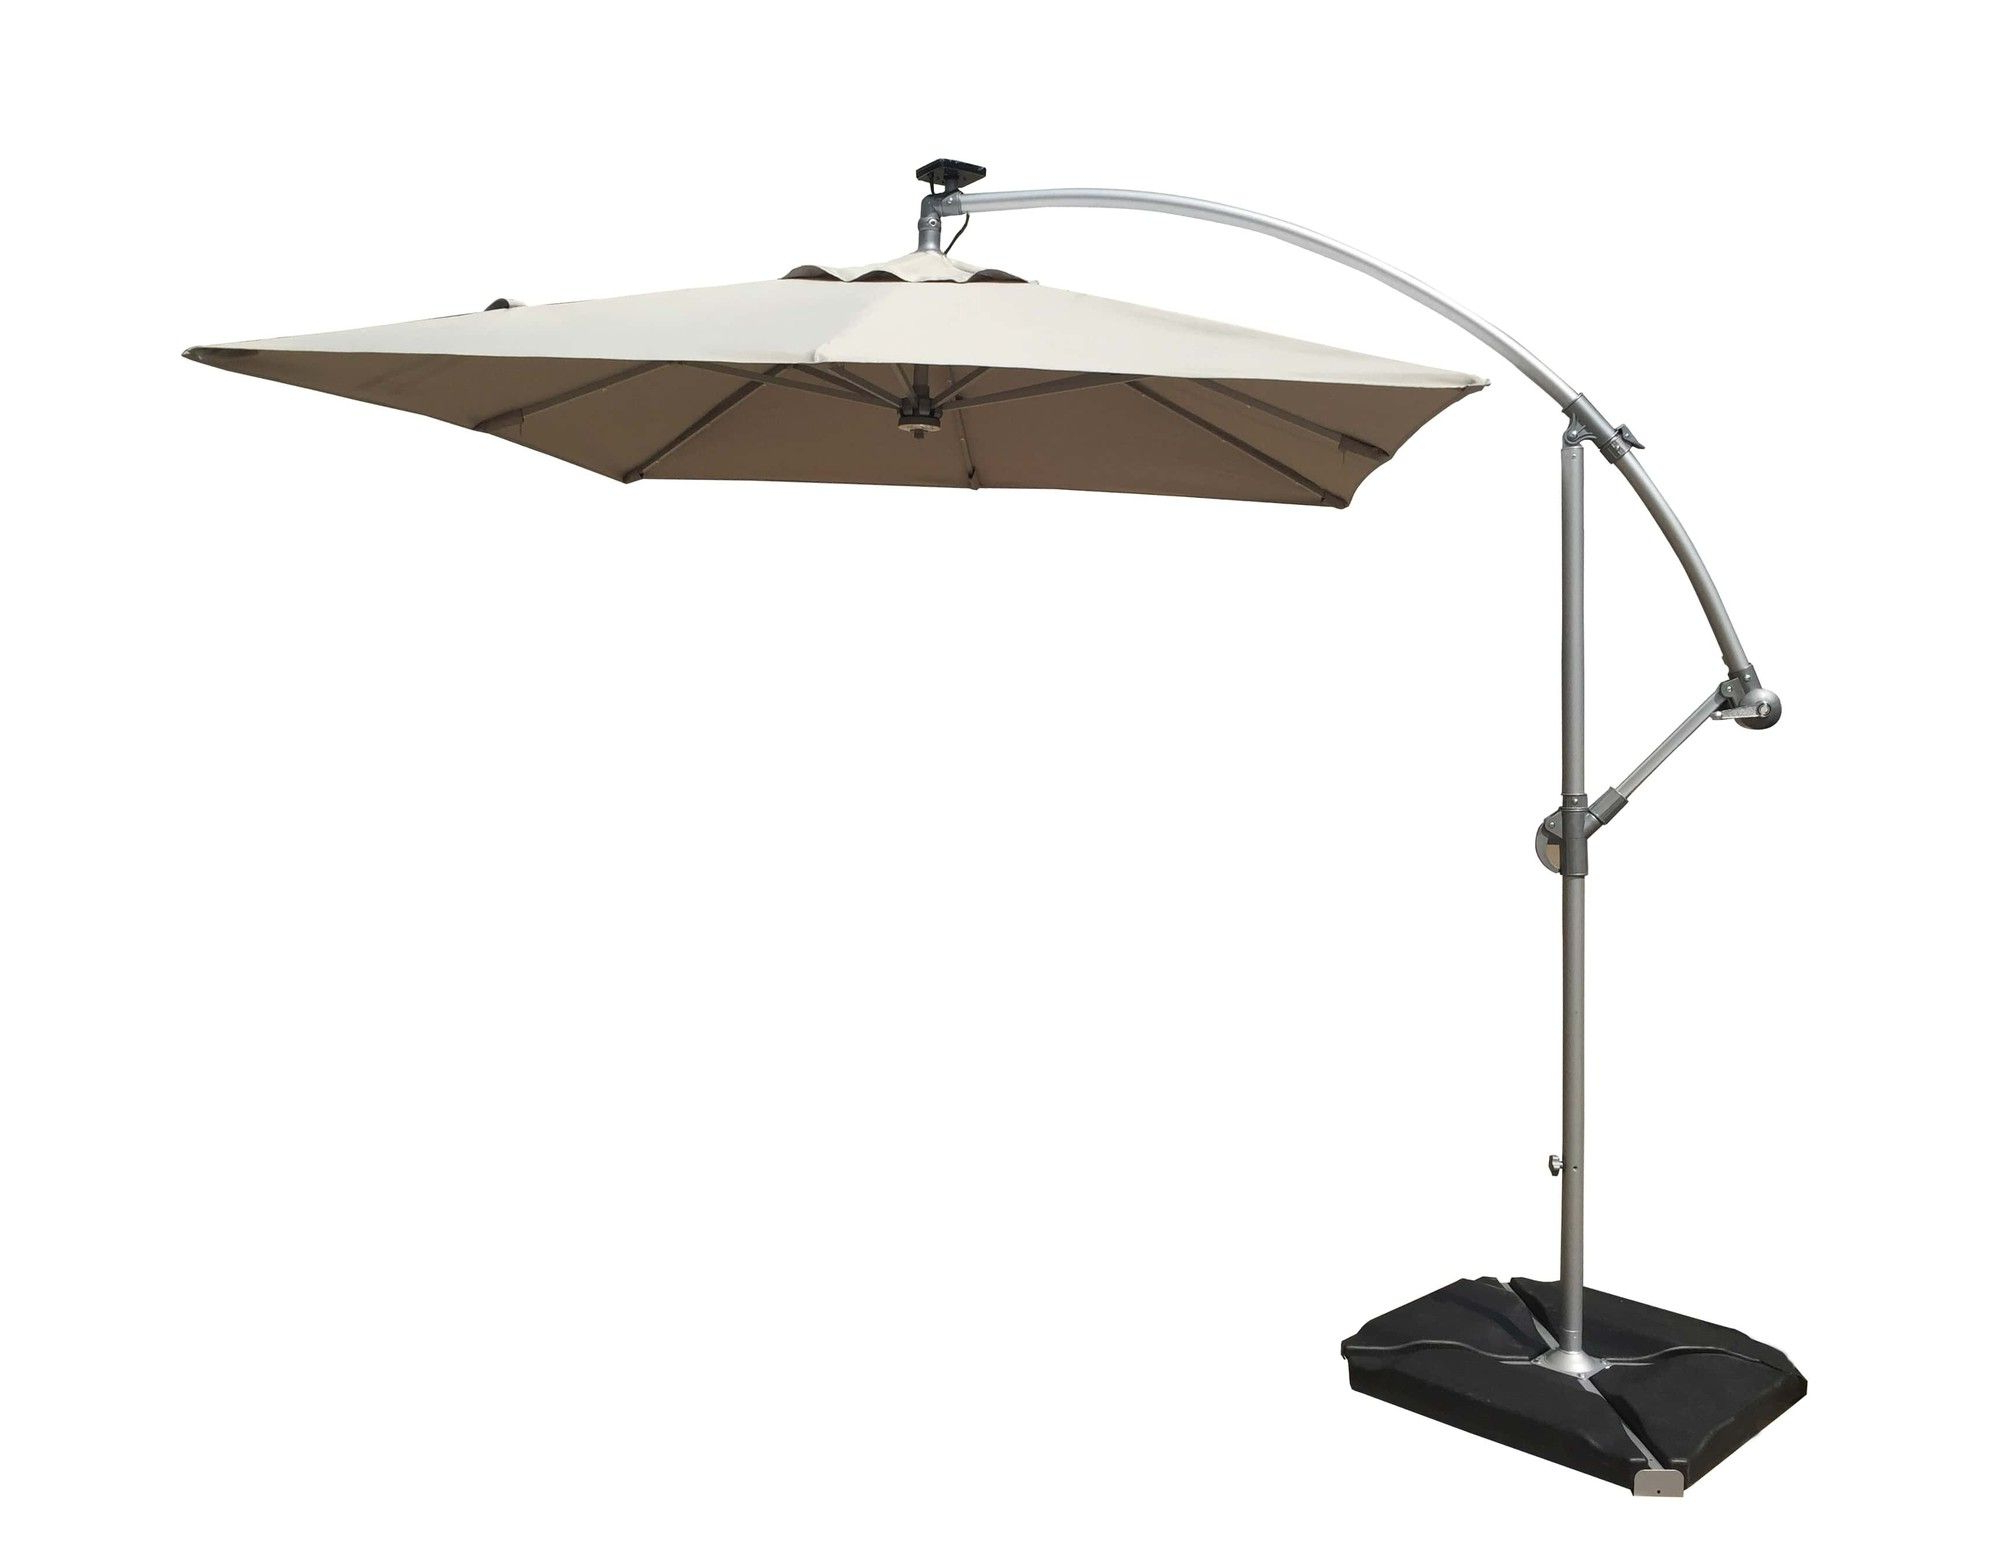 Kizzie Market Cantilever Umbrellas In 2019 8' Cantilever Umbrella (View 6 of 20)